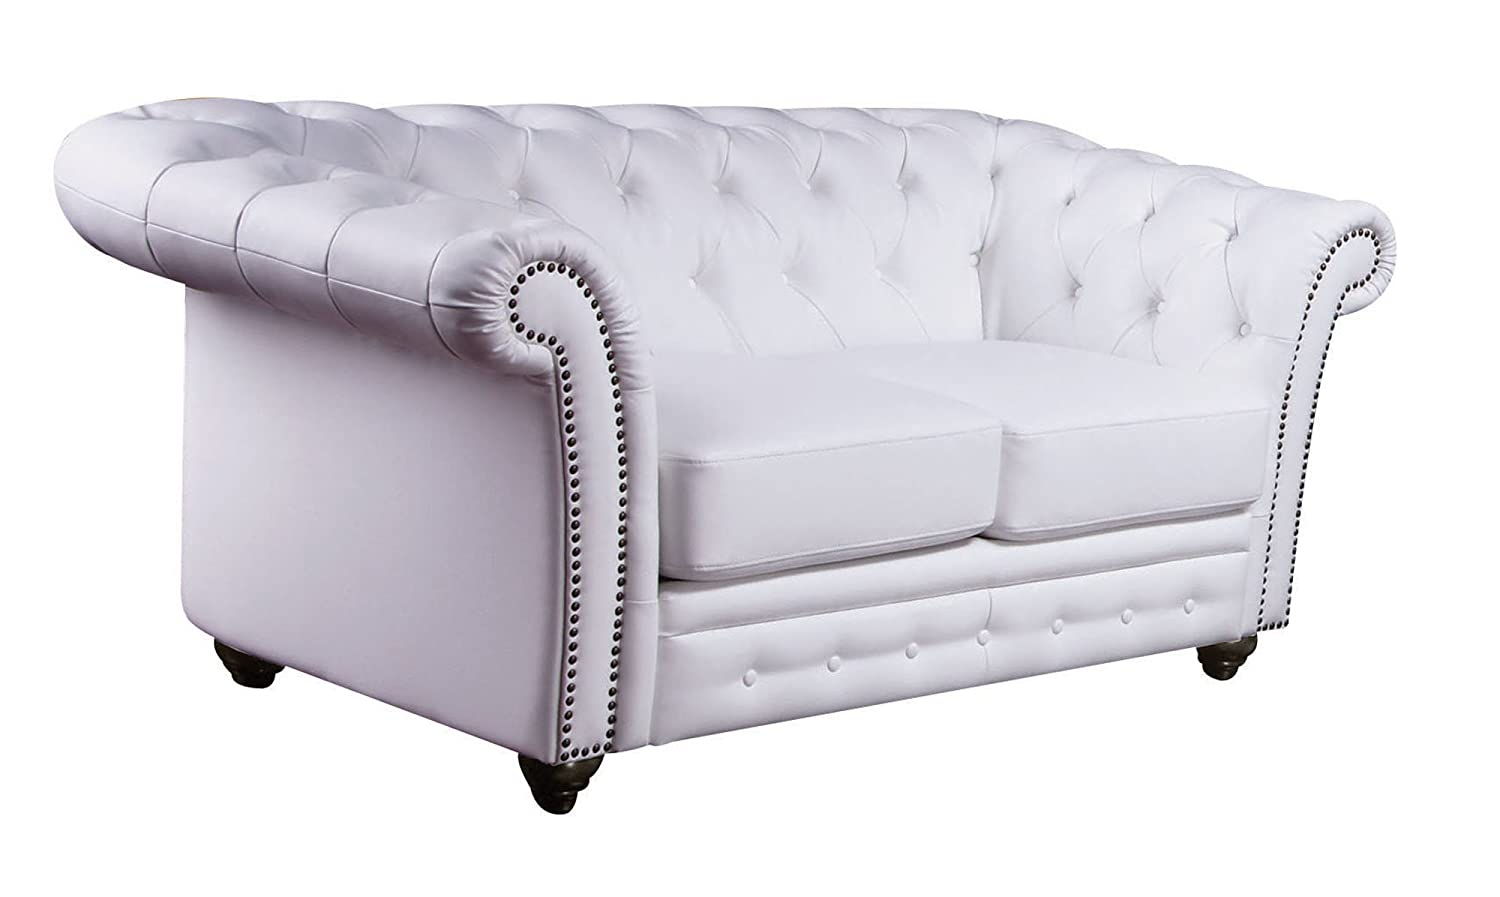 ACME 50166 Camden Bonded Leather Loveseat - White